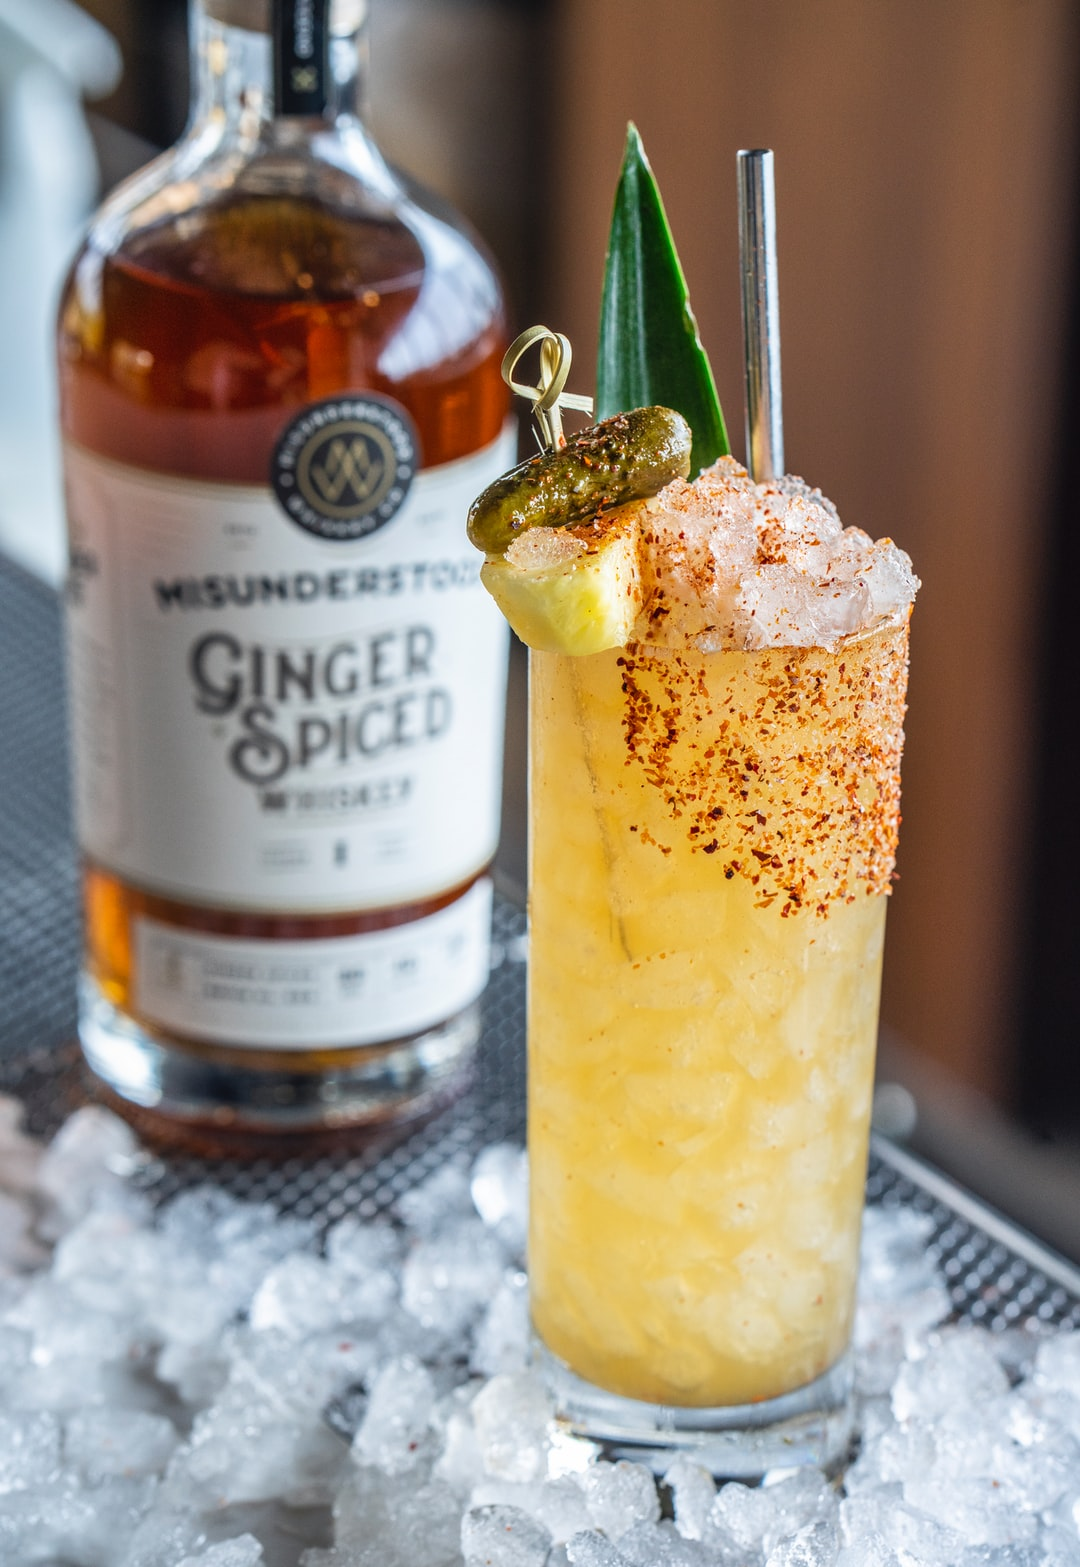 Tiki Pickle cocktail featuring Misunderstood Ginger Spiced Whiskey